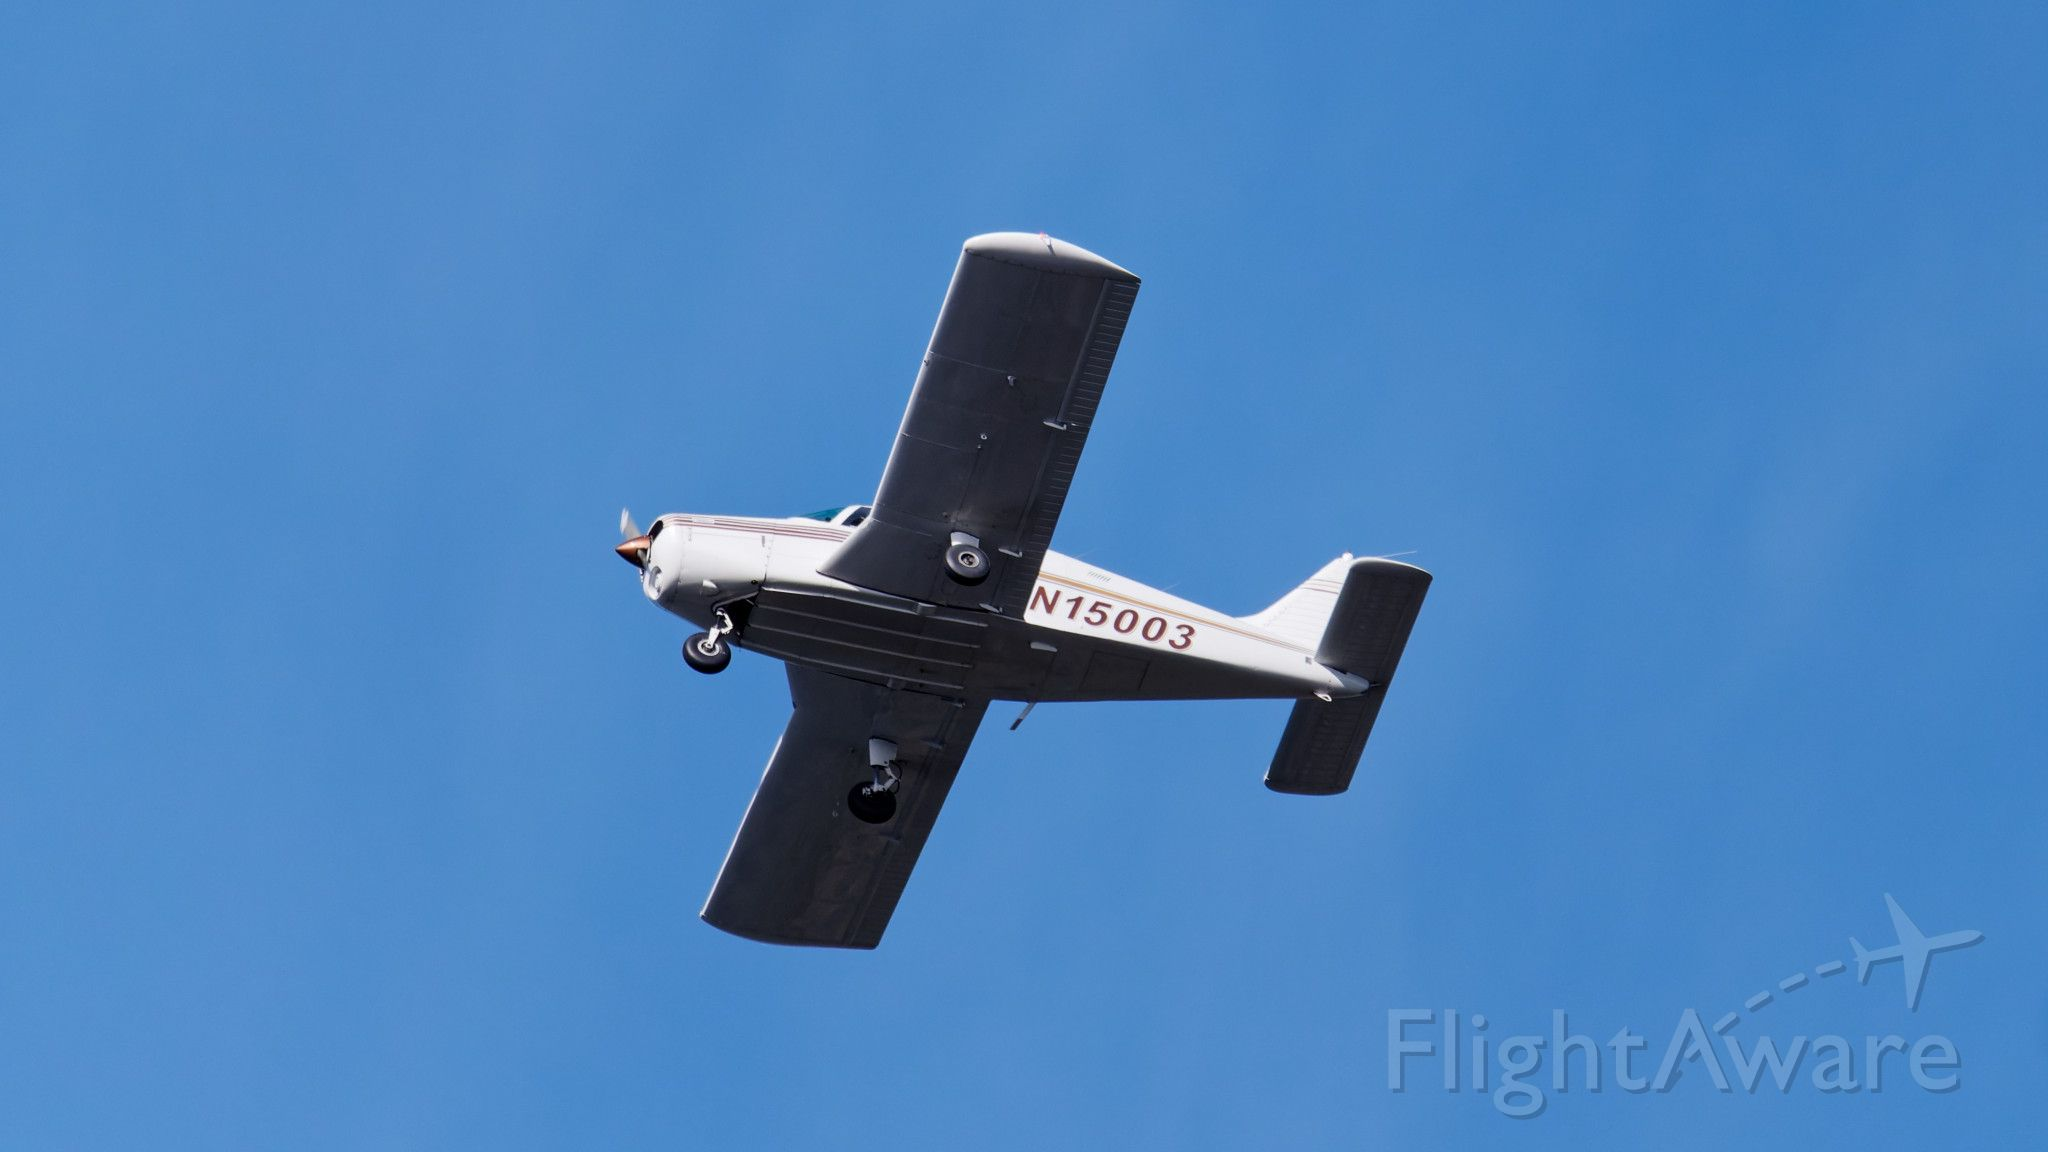 Piper Cherokee (N15003) - Overflying wildlife refuge after takeoff from Minute Man arifield